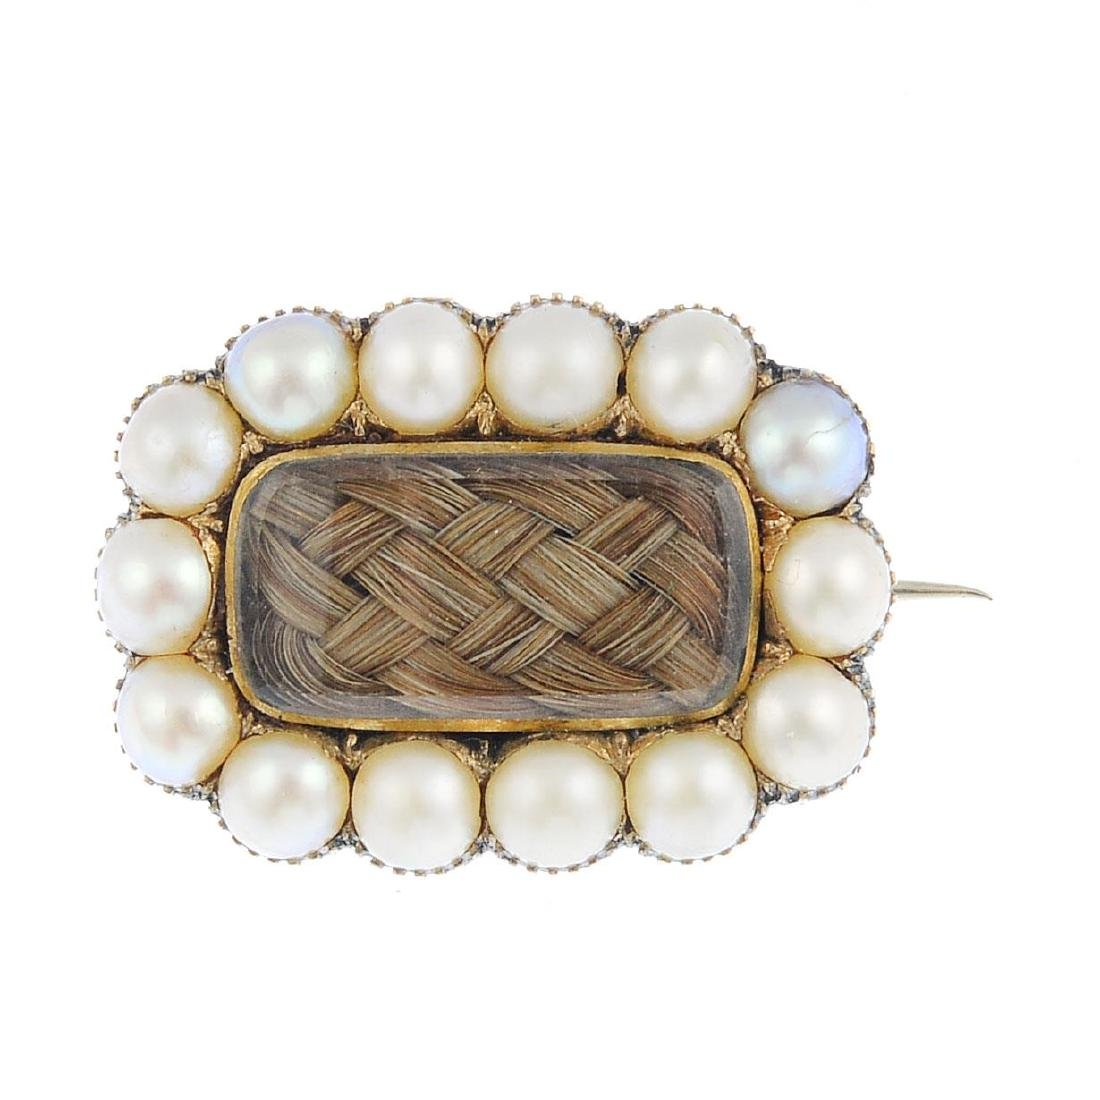 A George IV gold split pearl mourning brooch. Of